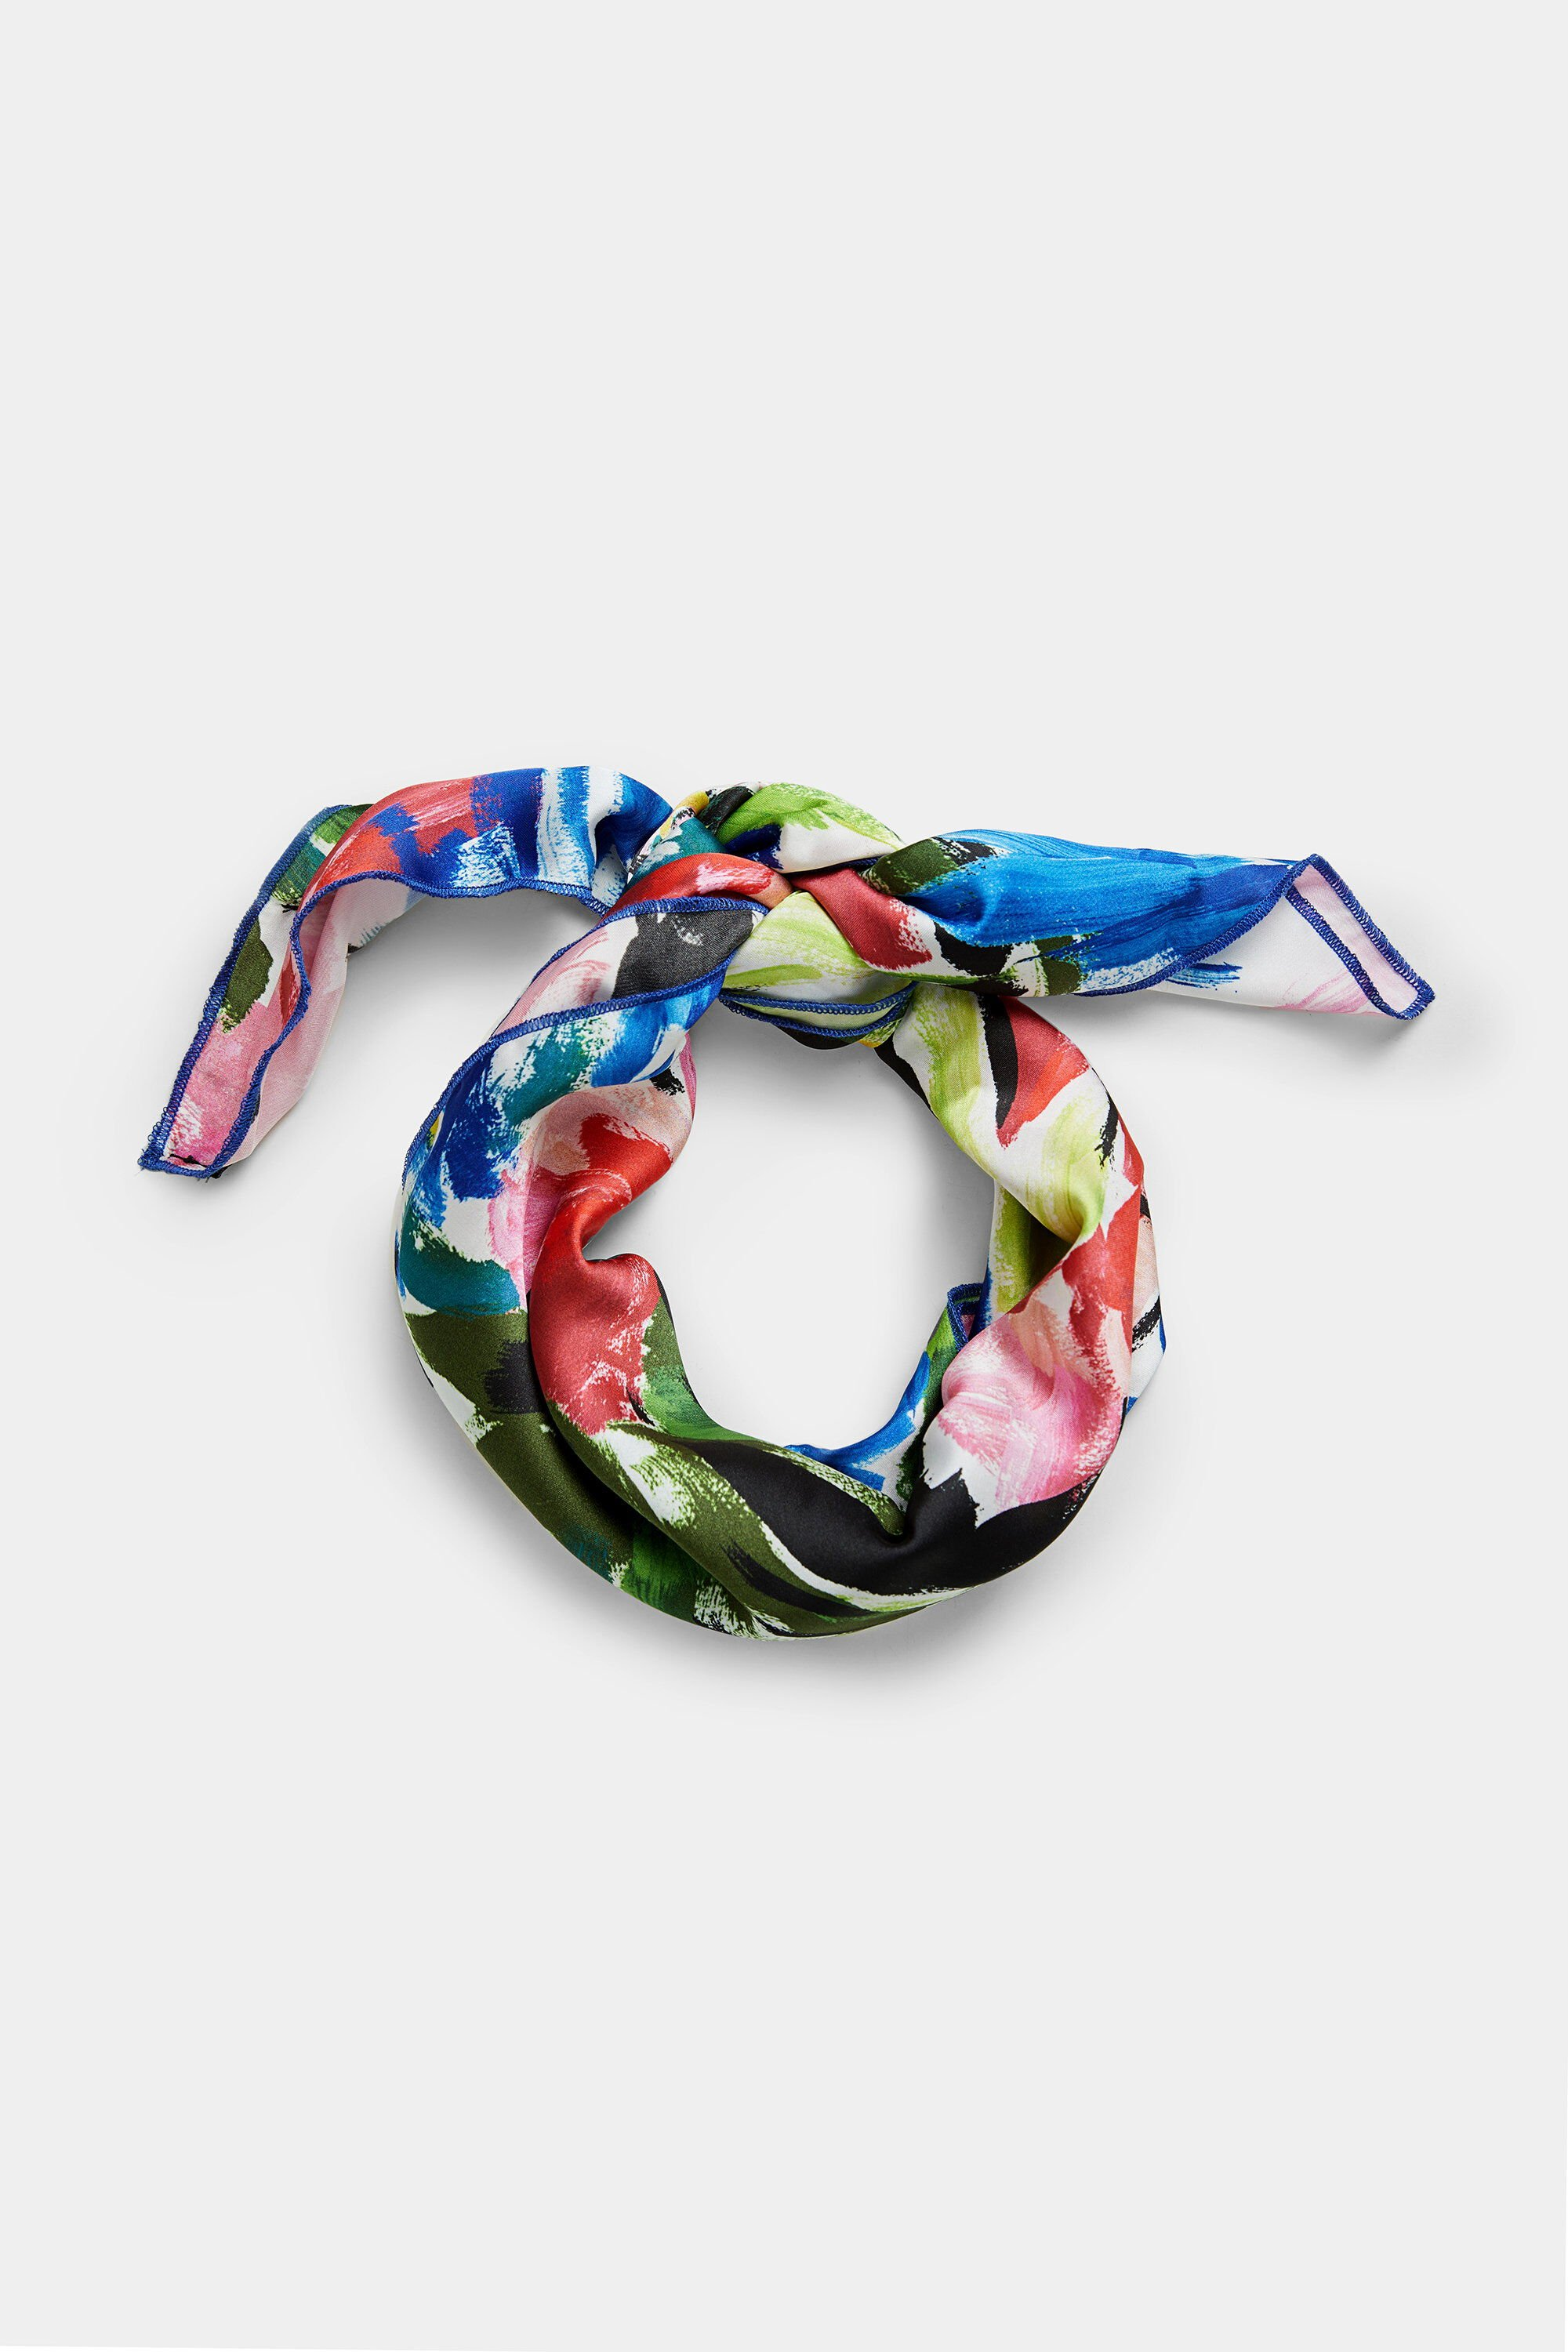 Foulard carré arty - MATERIAL FINISHES - U